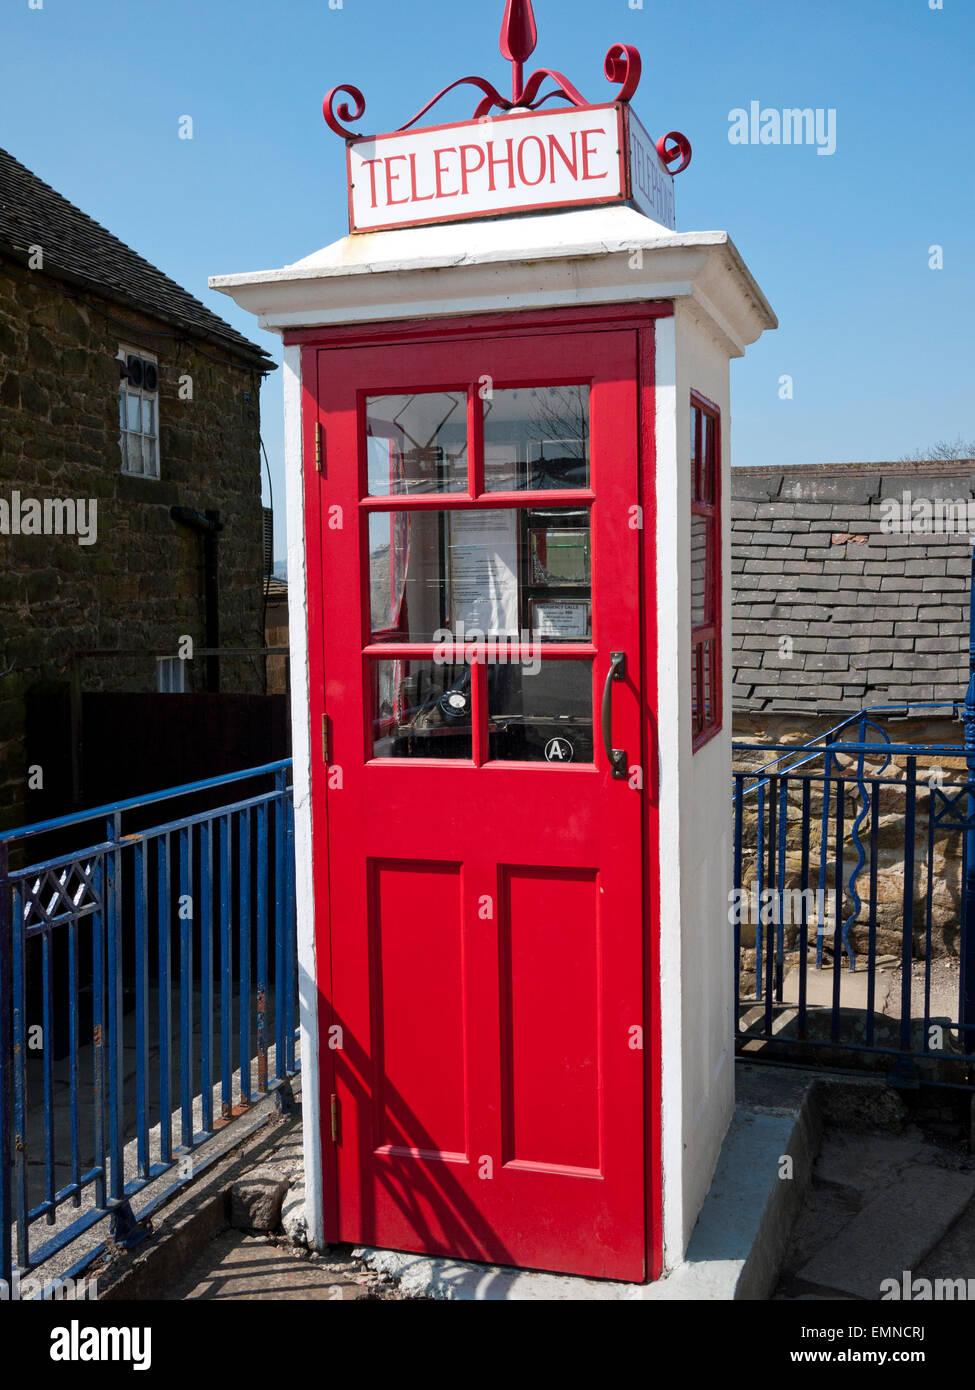 Vintage wooden K1 Telephone Kiosk at the Crich Tram Museum, Crich, Matlock, Derbyshire, UK. - Stock Image